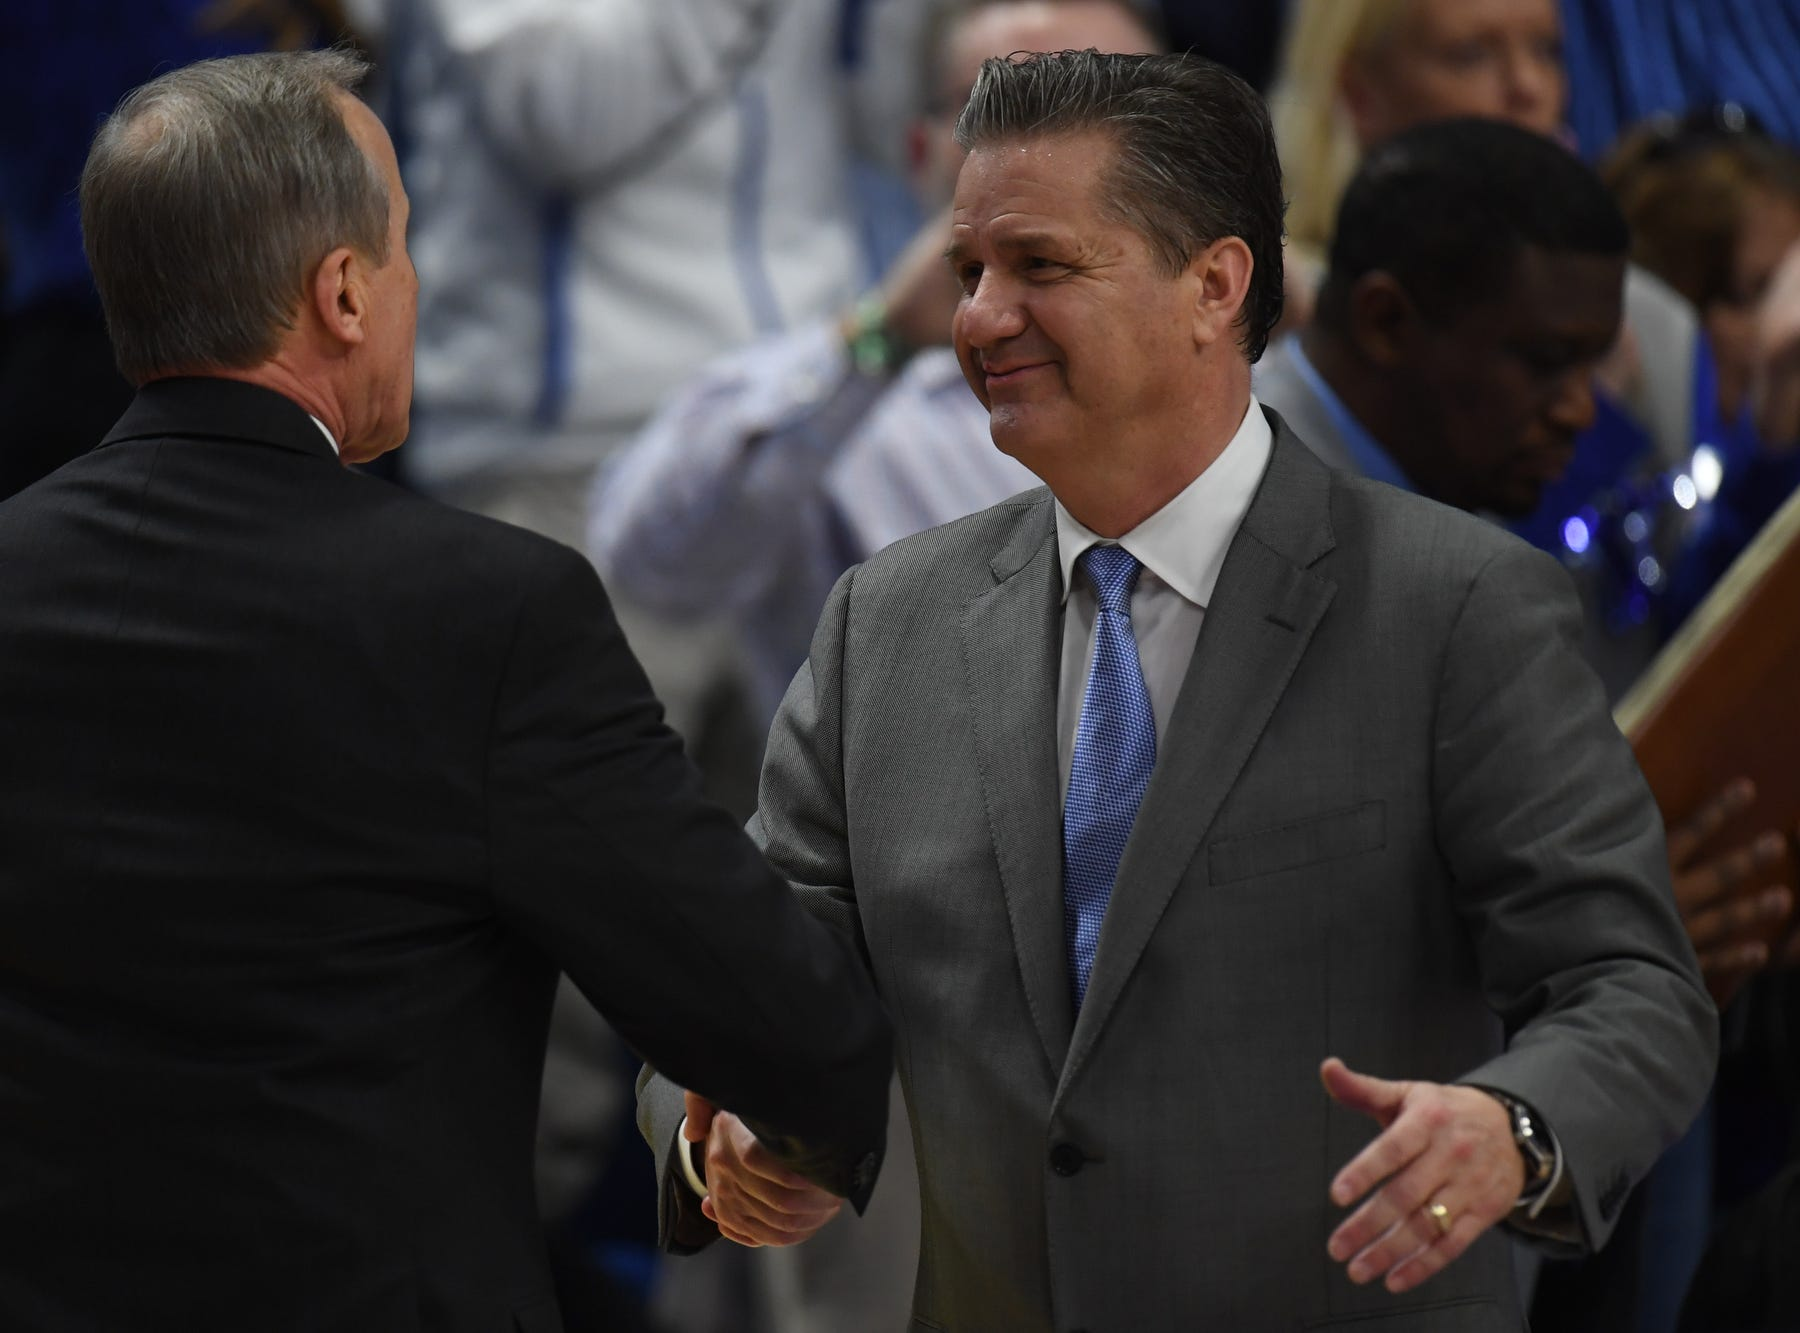 Tennessee head coach Rick Barnes and UK head coach John Calipari shake hands after the University of Kentucky mens basketball game against Tennessee at Rupp Arena in Lexington, Kentucky on Saturday, February 16, 2019.